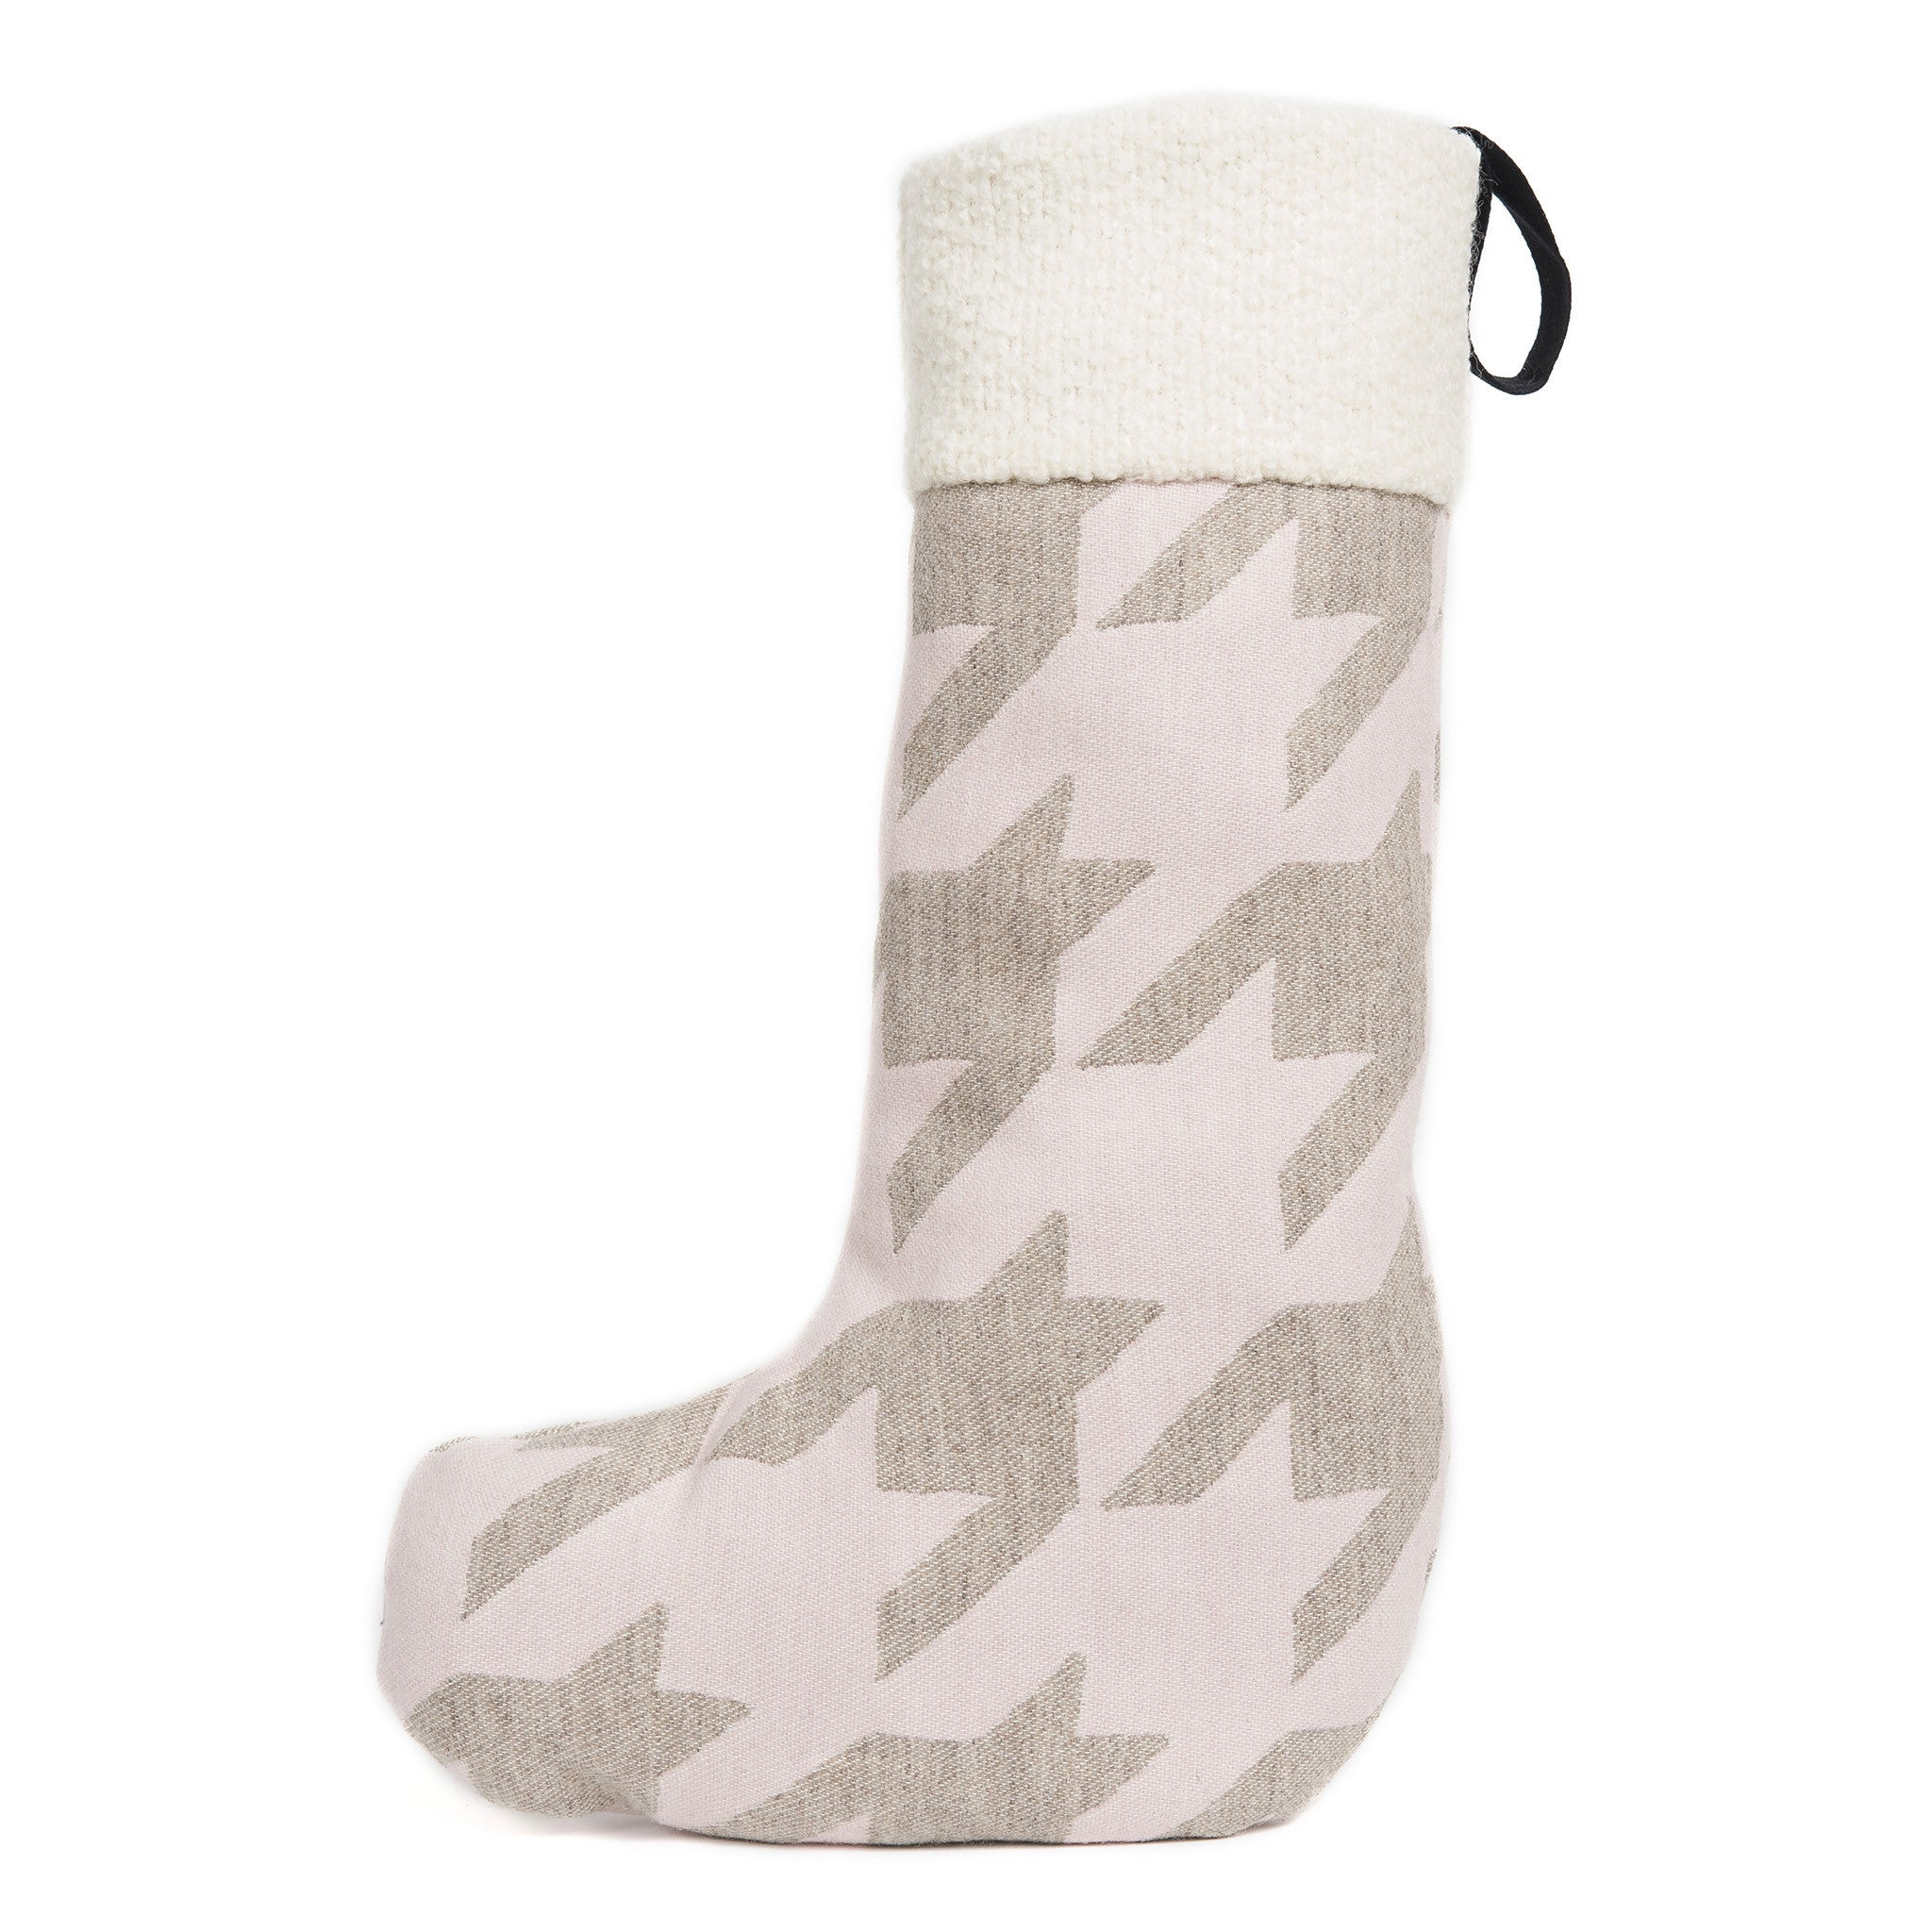 Merino Lambswool Christmas Stocking - Dog Tooth Pink and Linen Stocking - Tori Murphy Ltd